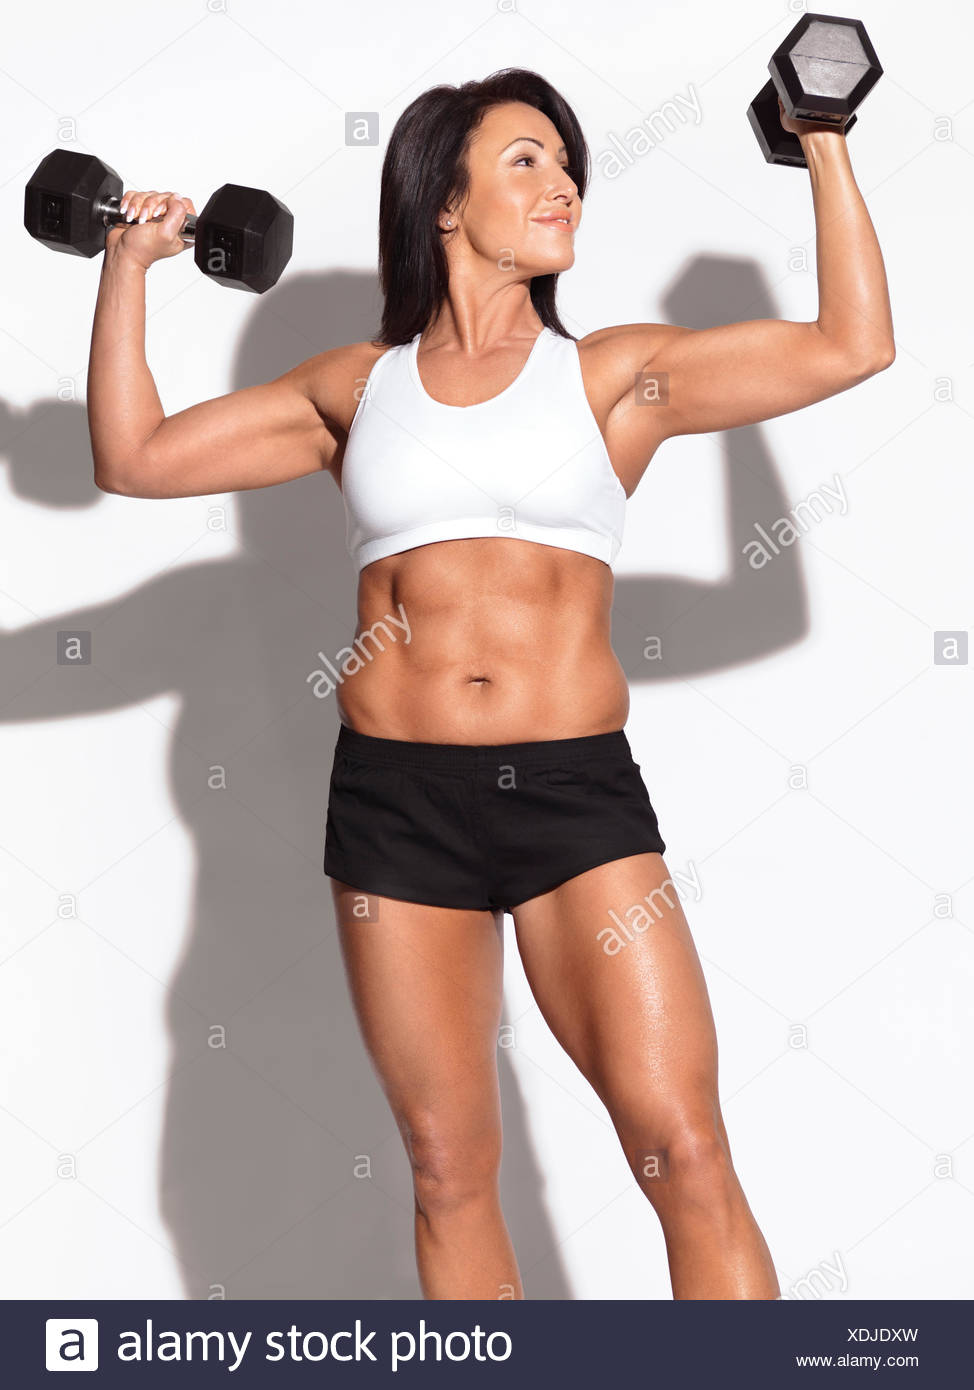 Fit woman holding dumbbells - Stock Image